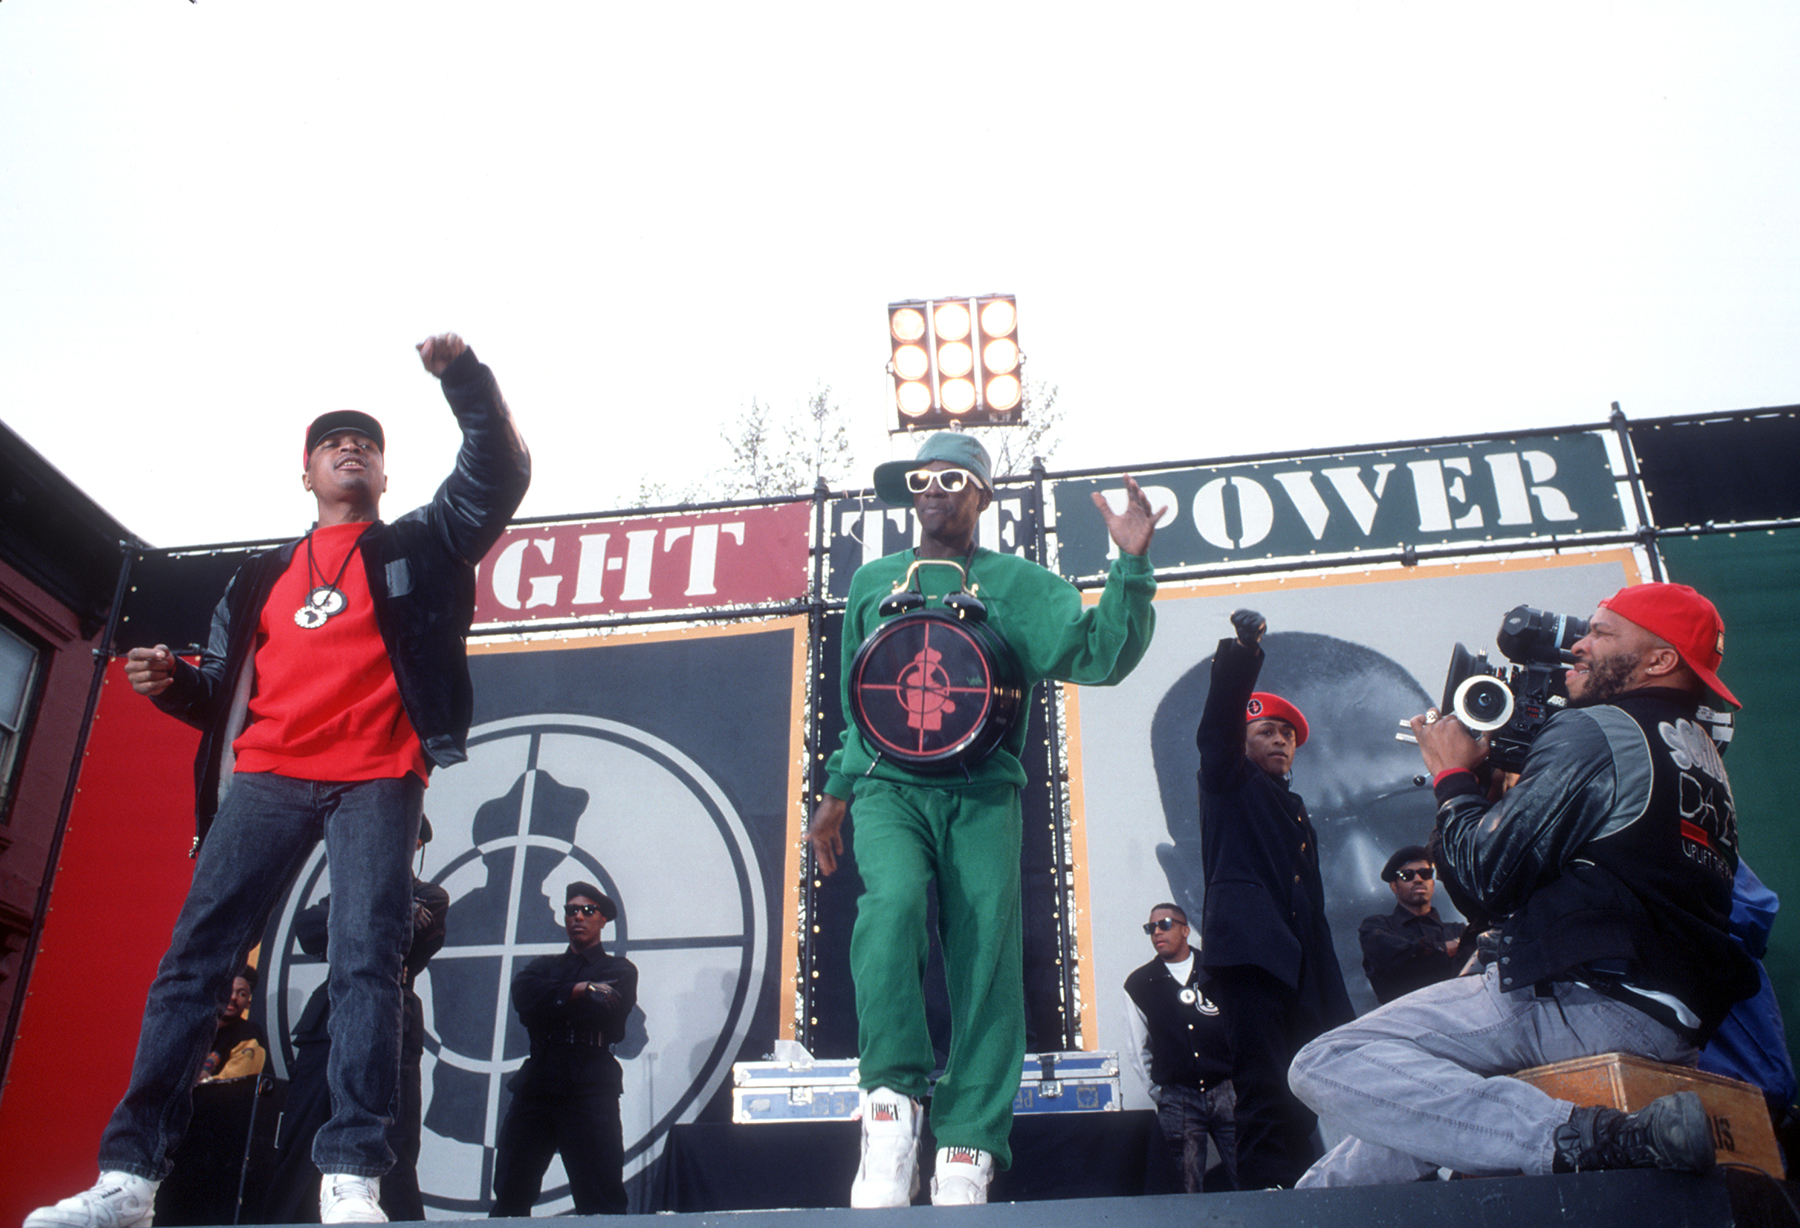 NEW YORK - 1989: (L-R) Rapper Flavor Flav, director Spike Lee and Chuck D of the rap group 'Public Enemy' film a video for their song 'Fight The Power' directed by Spike Lee in 1989 in New York, New York. (Photo by Michael Ochs Archives/Getty Images)